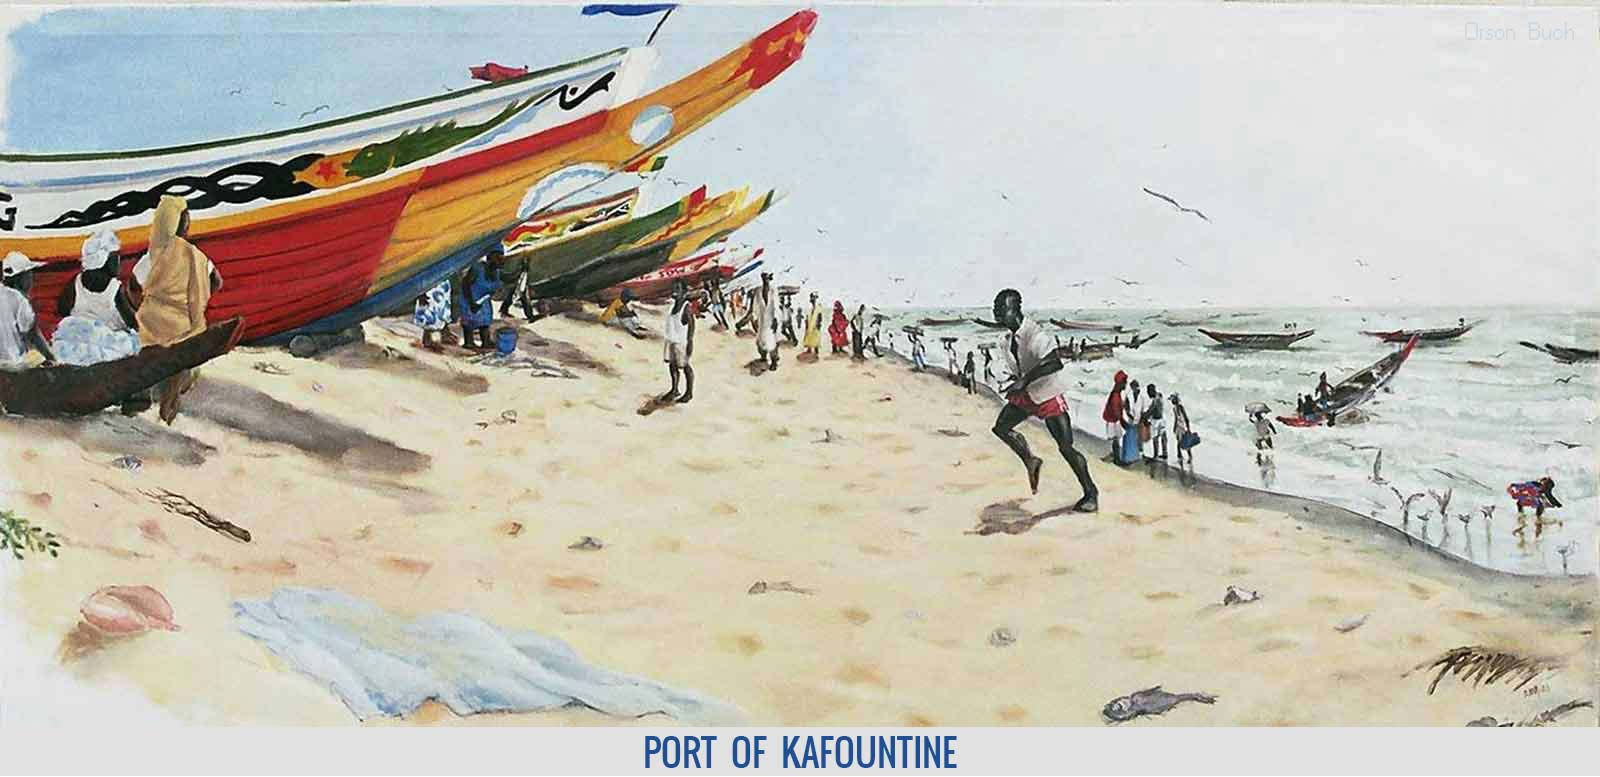 Port of Kafountine, Orson Buch's oil on canvas